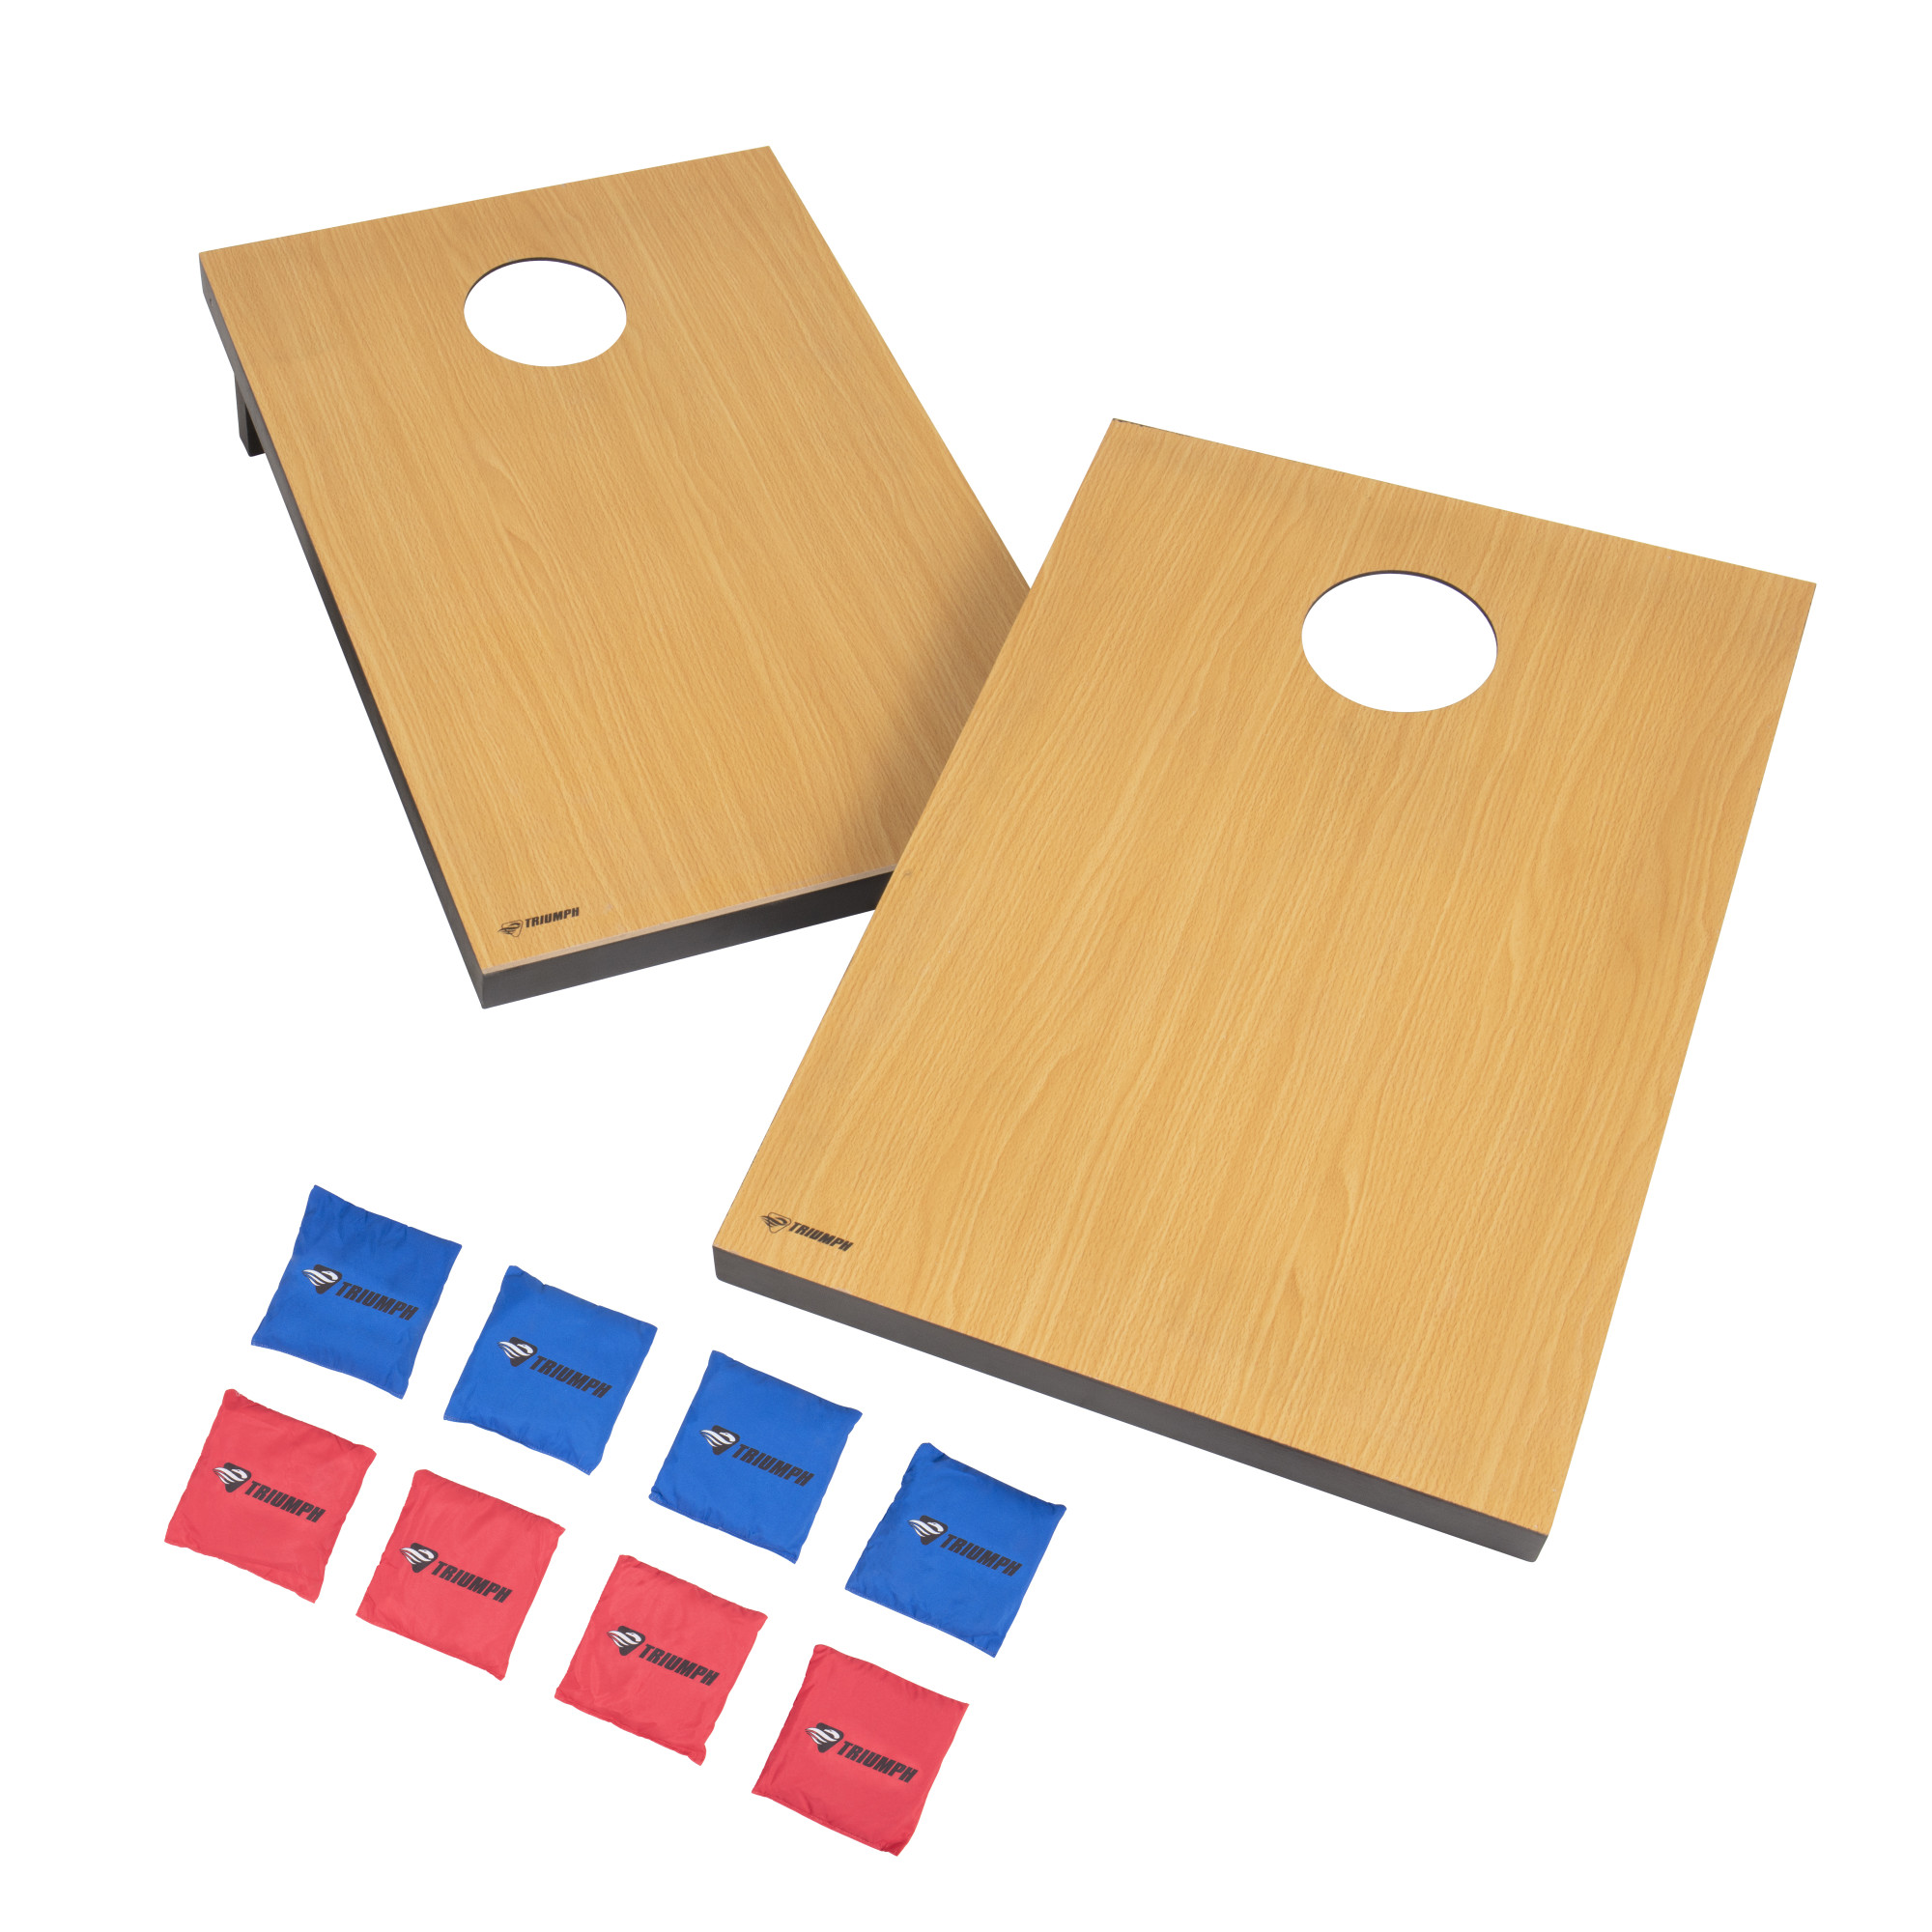 Triumph Tournament Bean Bag Toss Game with Two Wooden Portable Game Platforms on Foldable Legs and Eight Toss Bags